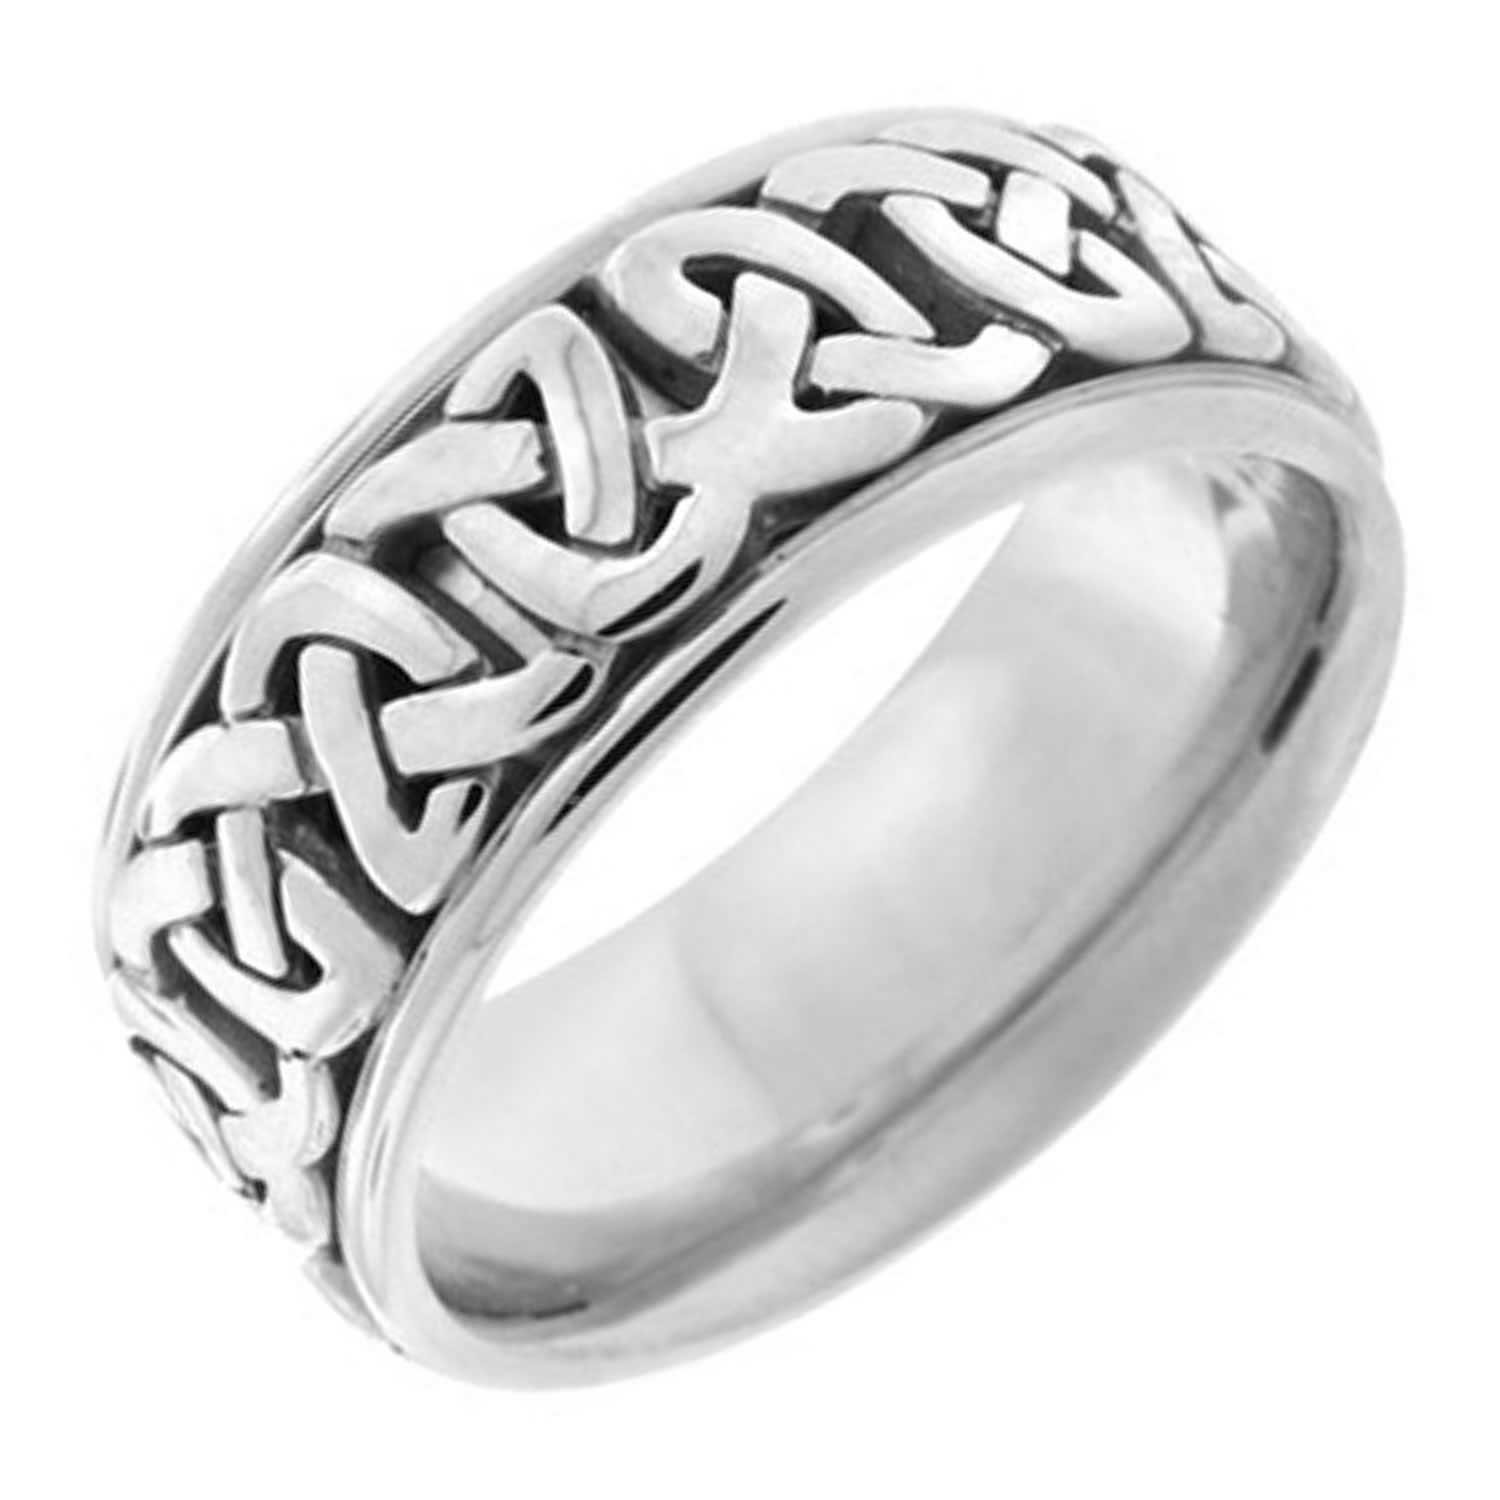 14K White Gold Celtic Love Knot Men's Comfort Fit Wedding Band (8.5mm) Size-11.5c1